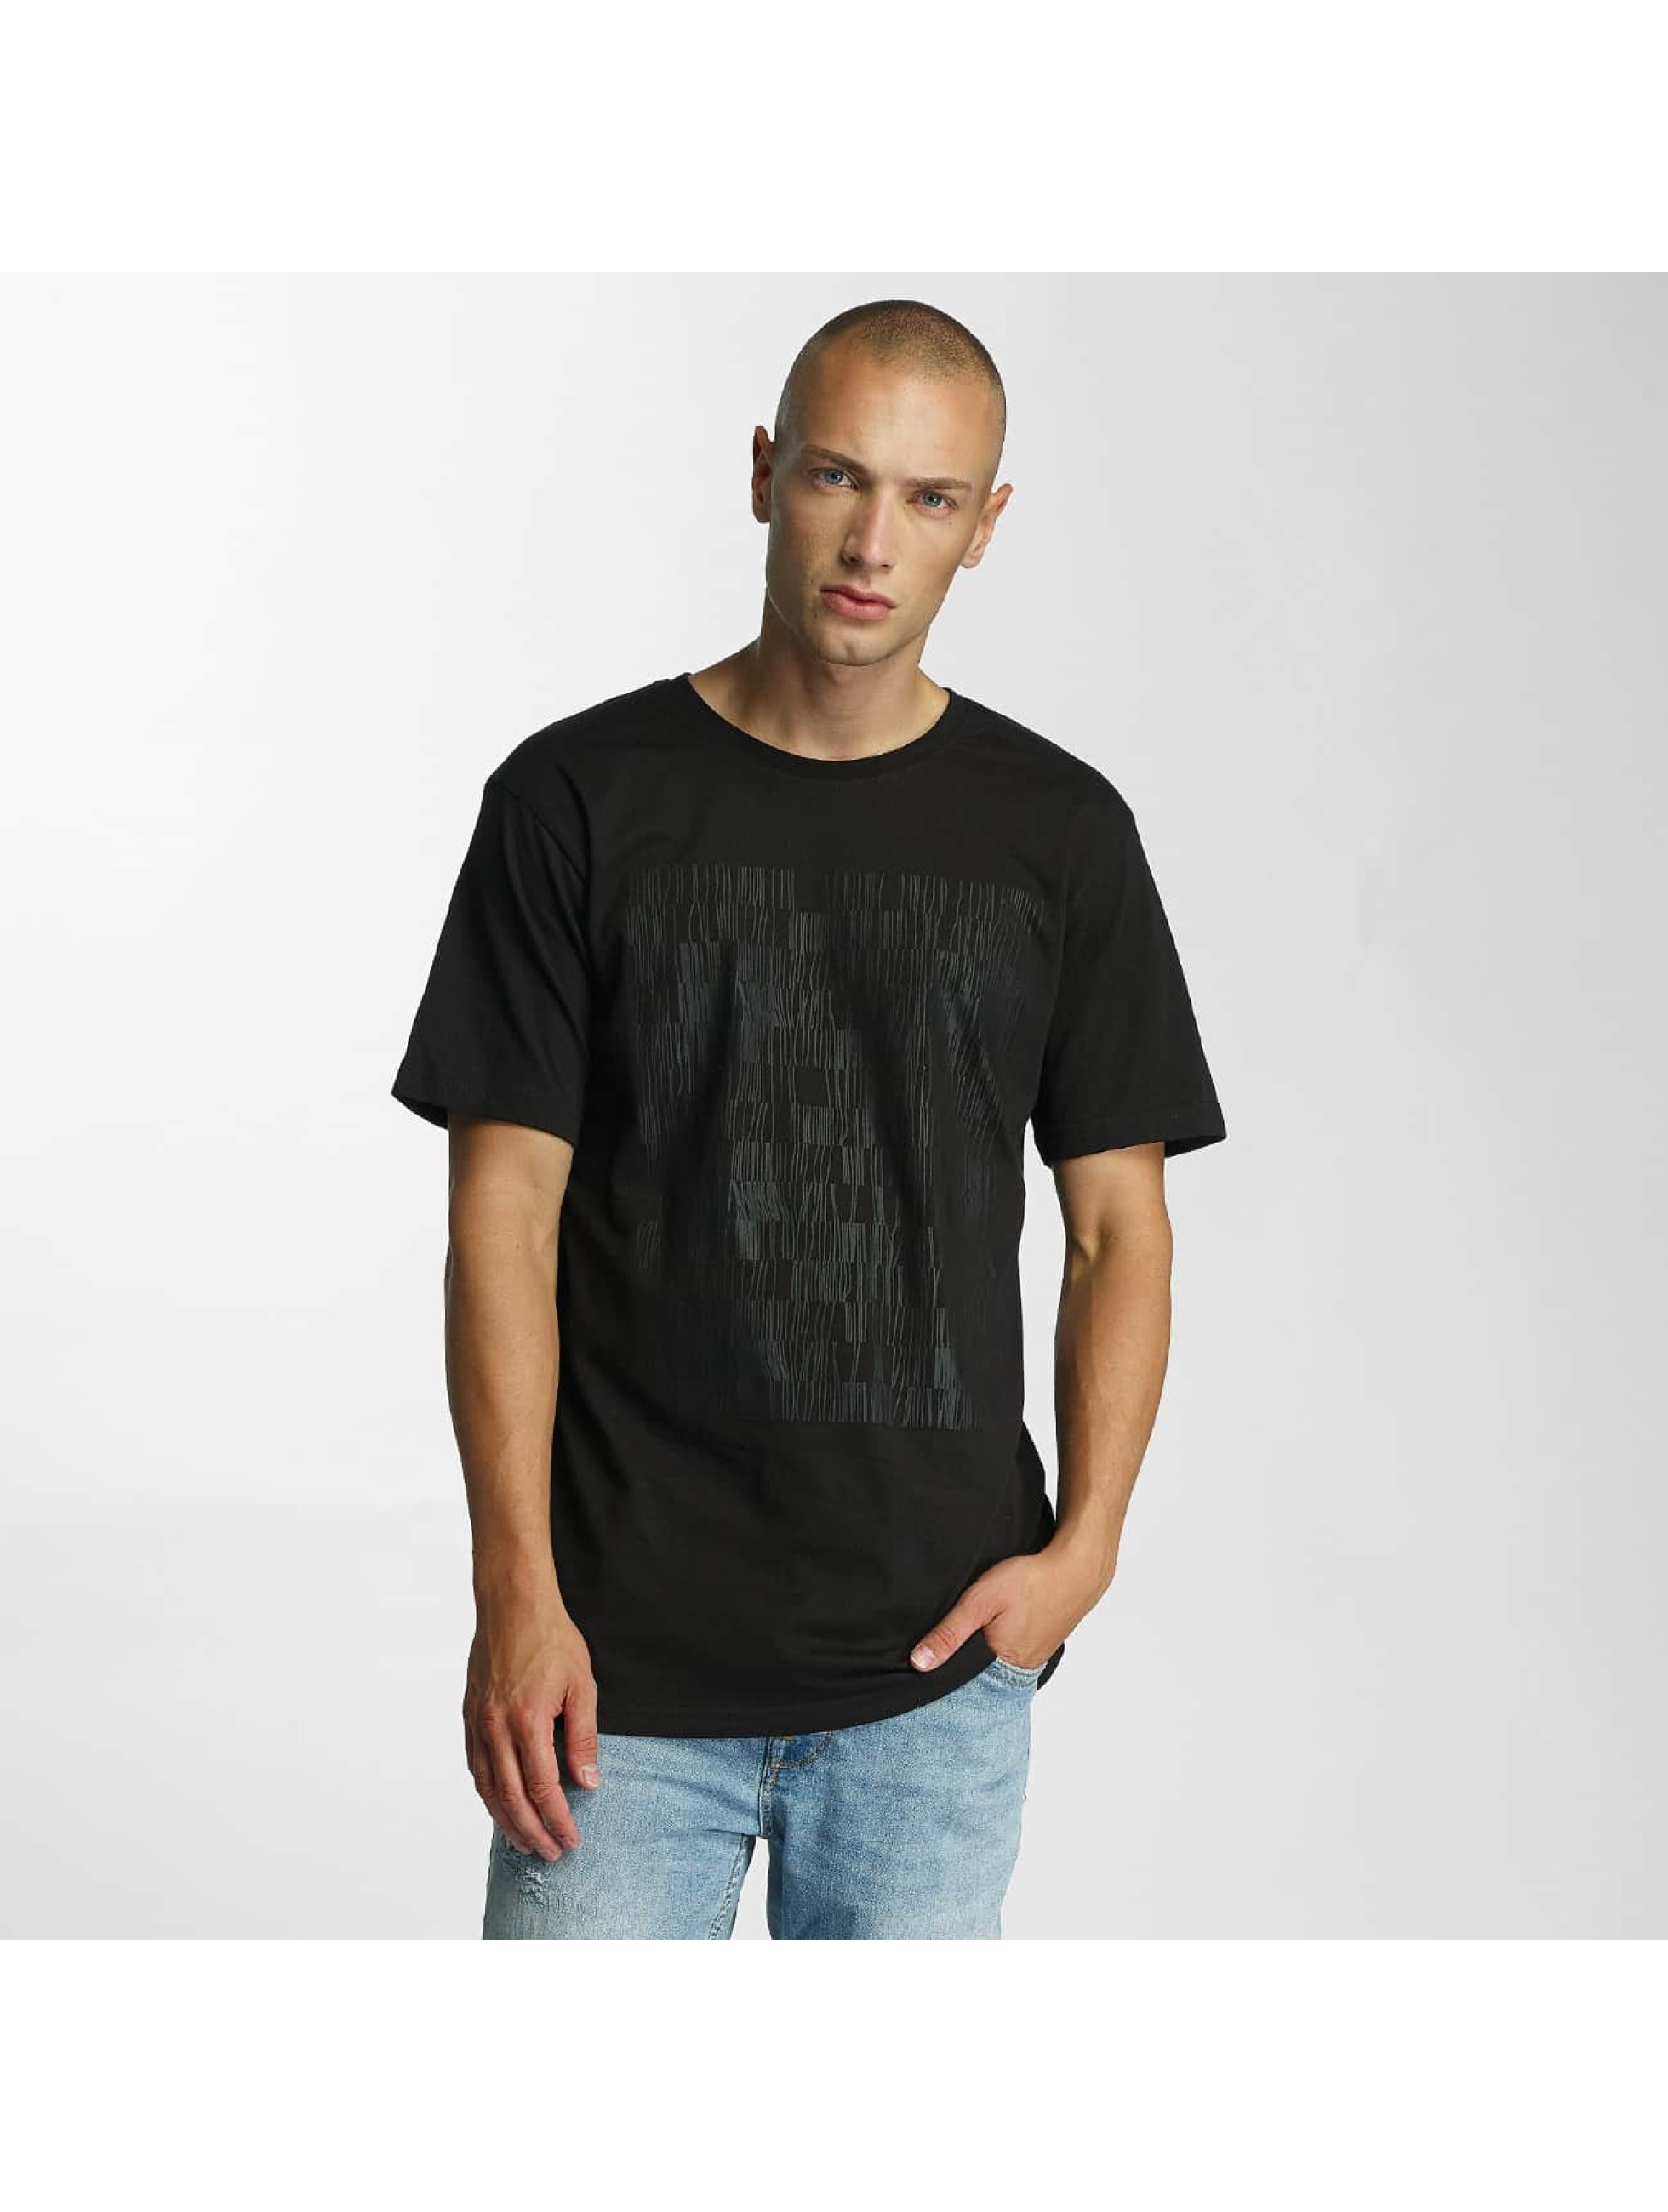 Cyprime / T-Shirt Holmium in black M